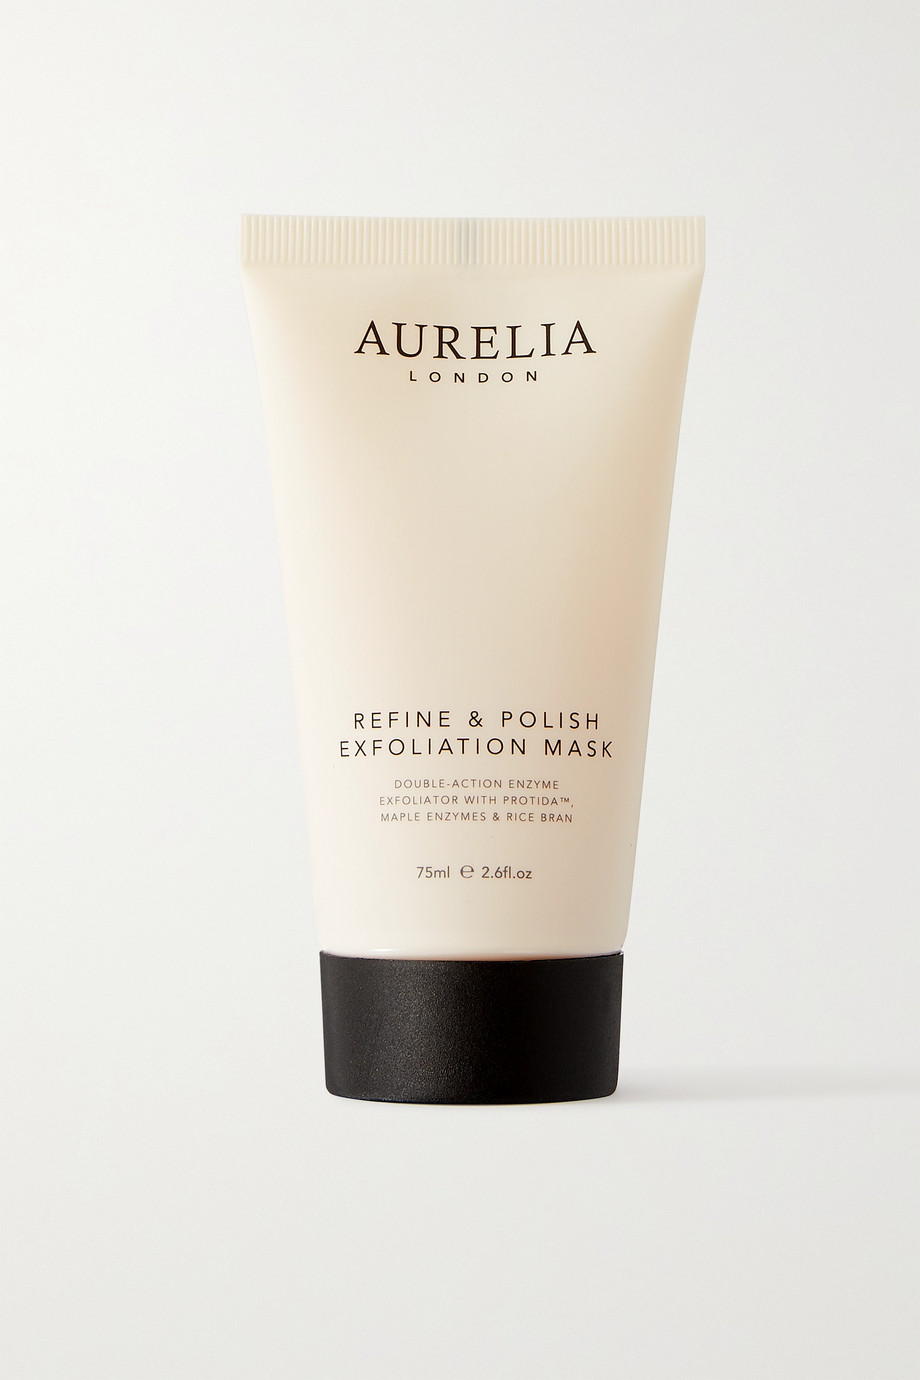 Refine and Polish Miracle Balm, 75ml, by Aurelia Probiotic Skincare